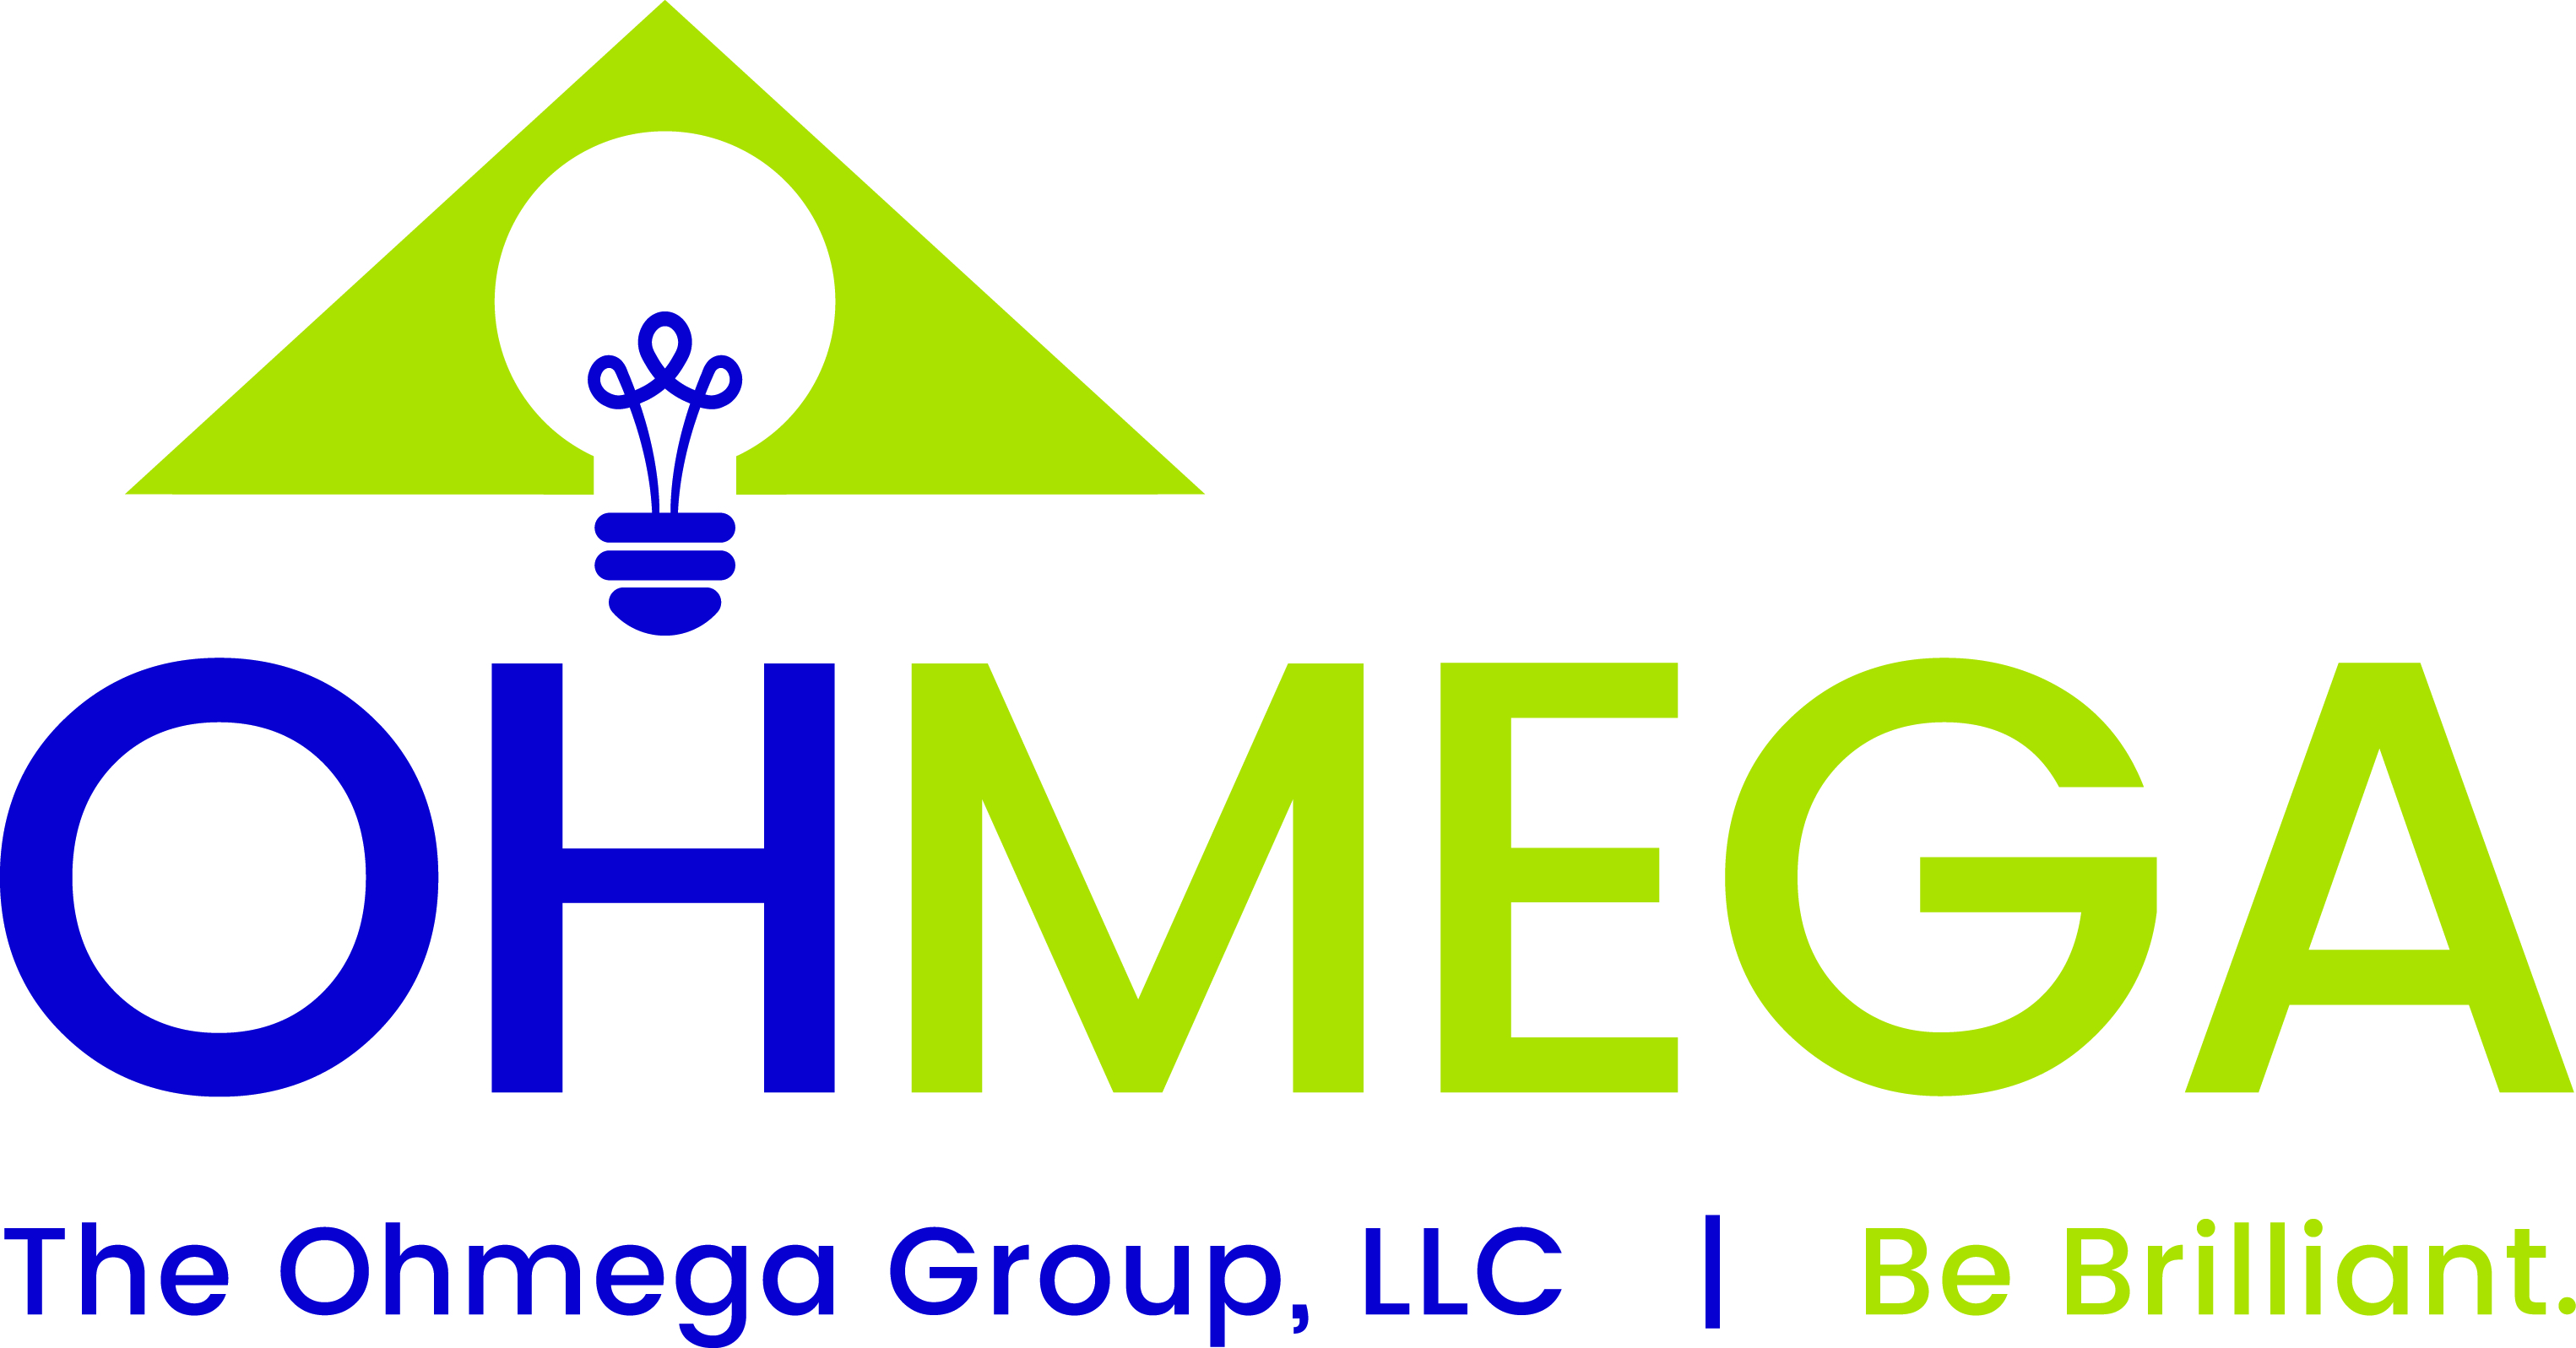 Ohmega_Group.JPG